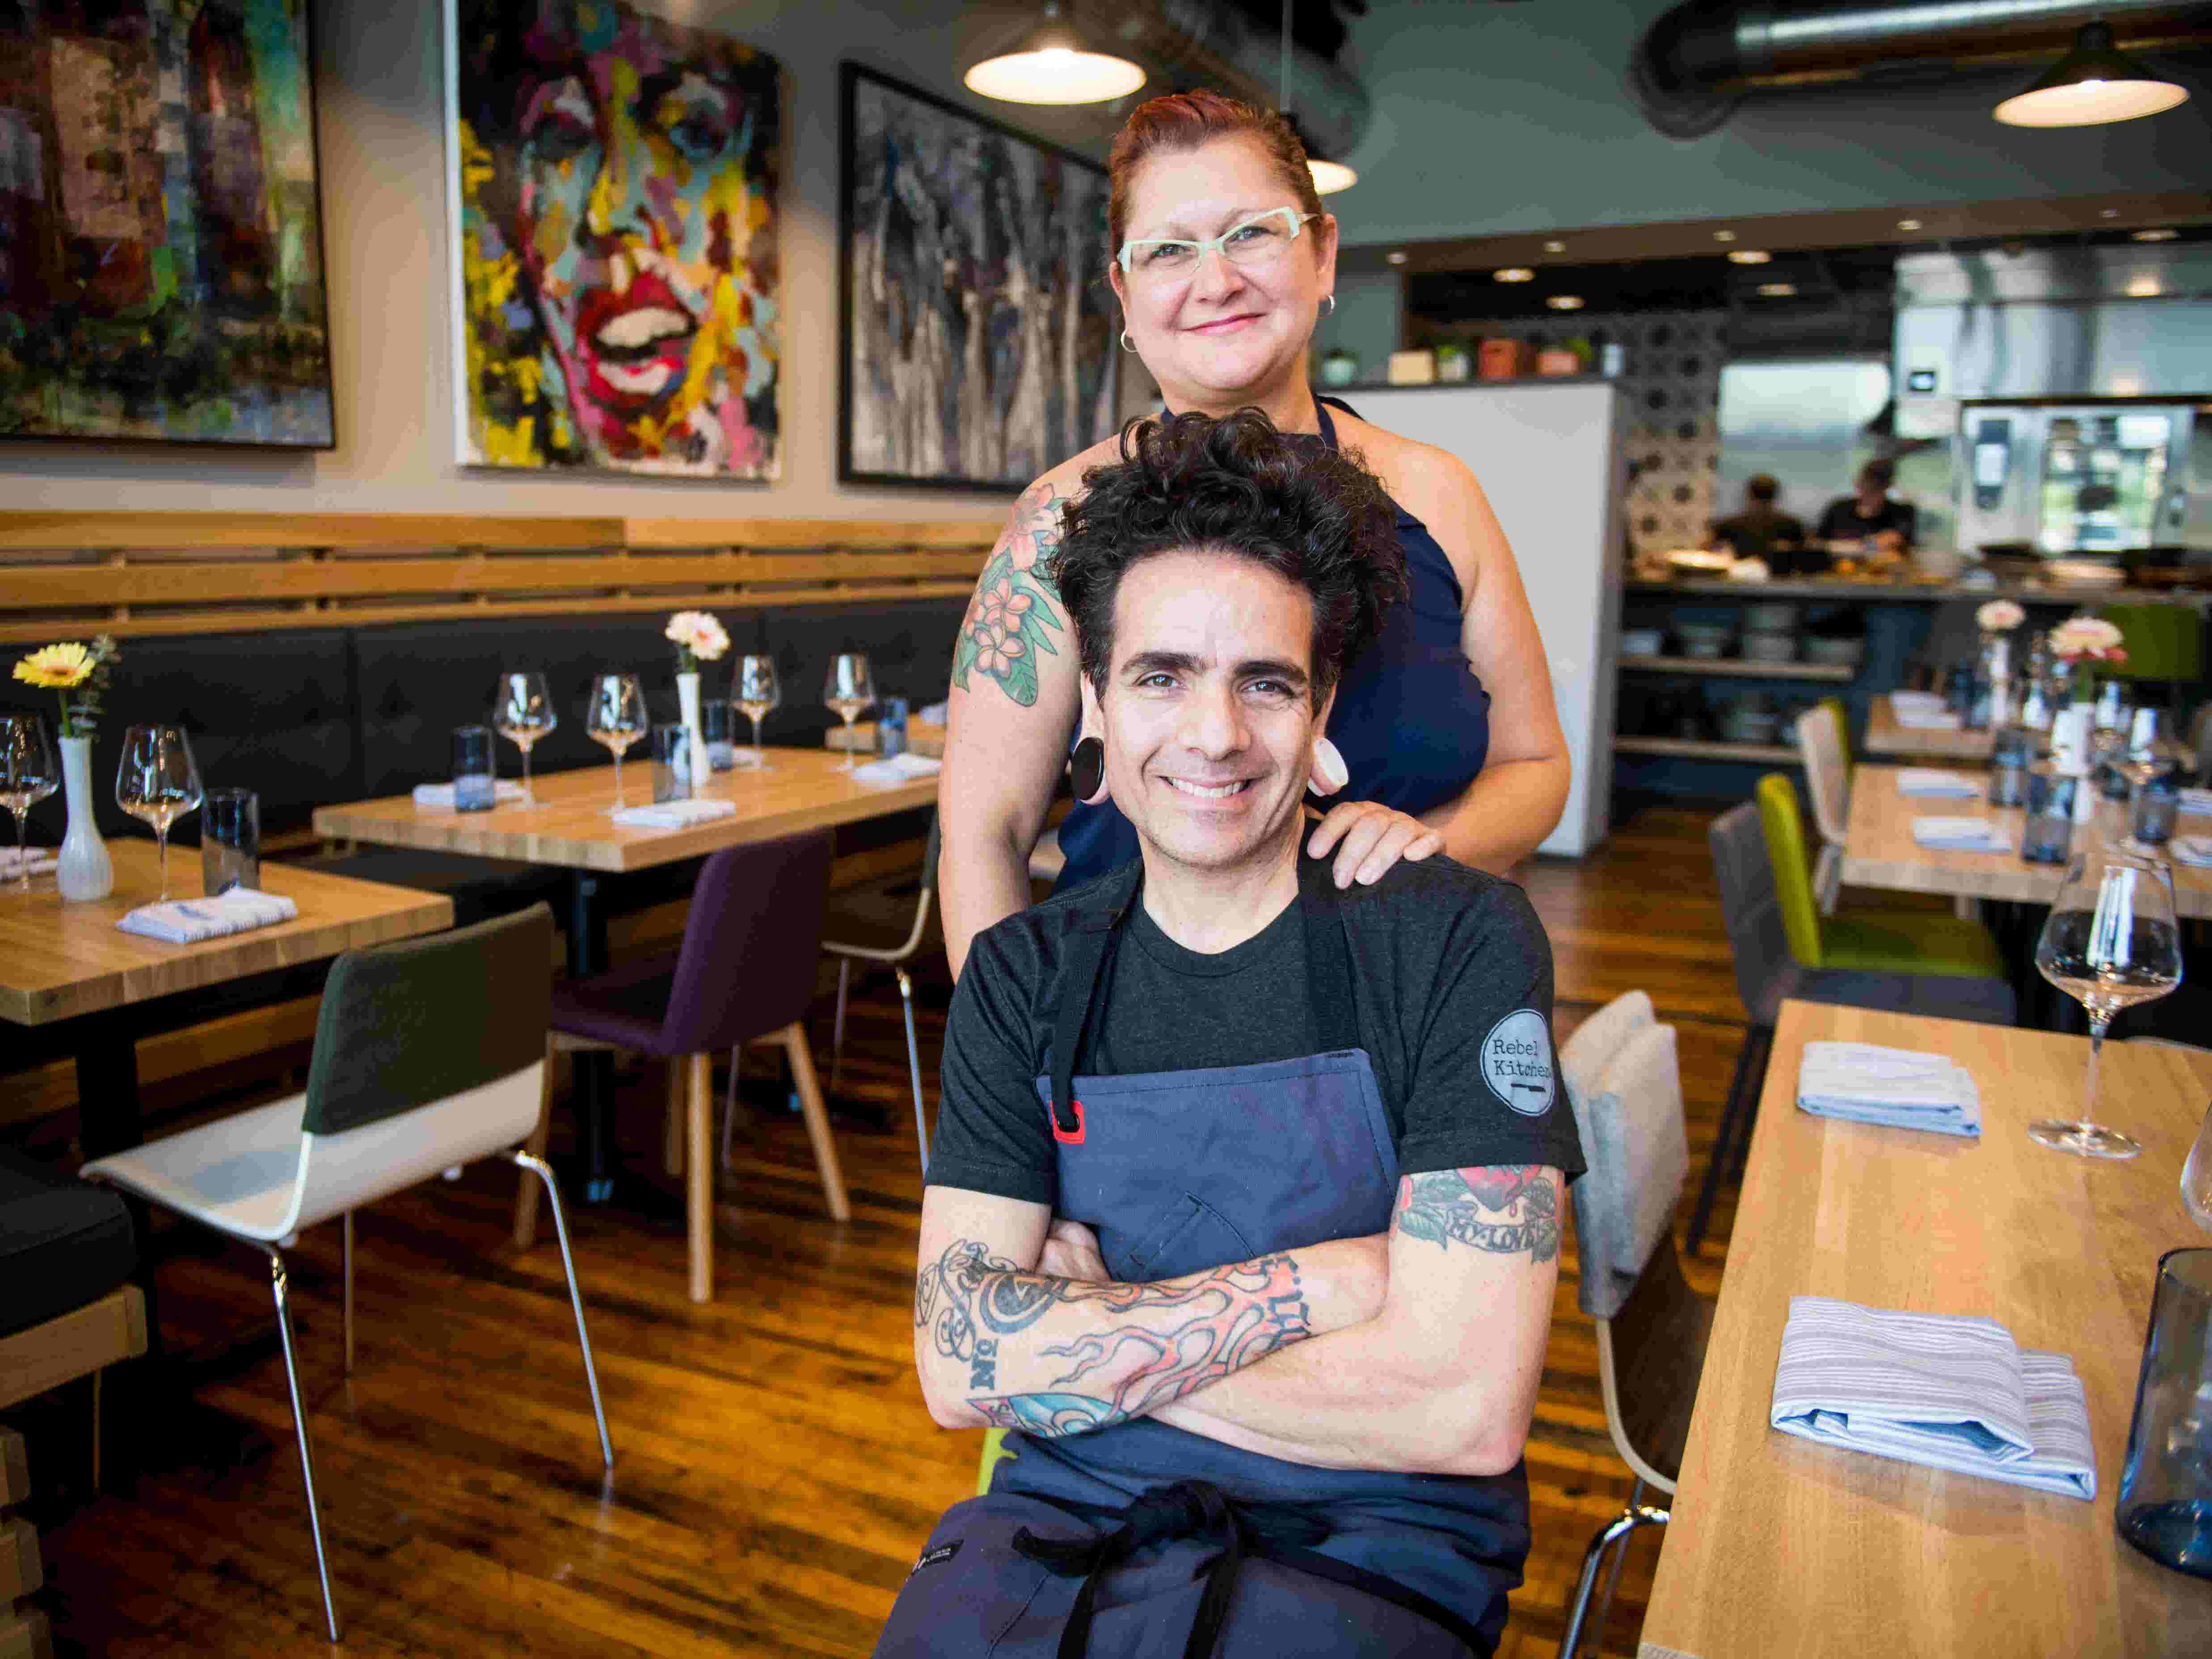 Paul And Franchesca As Have Made The New Rebel Kitchen Restaurant A Family Affair